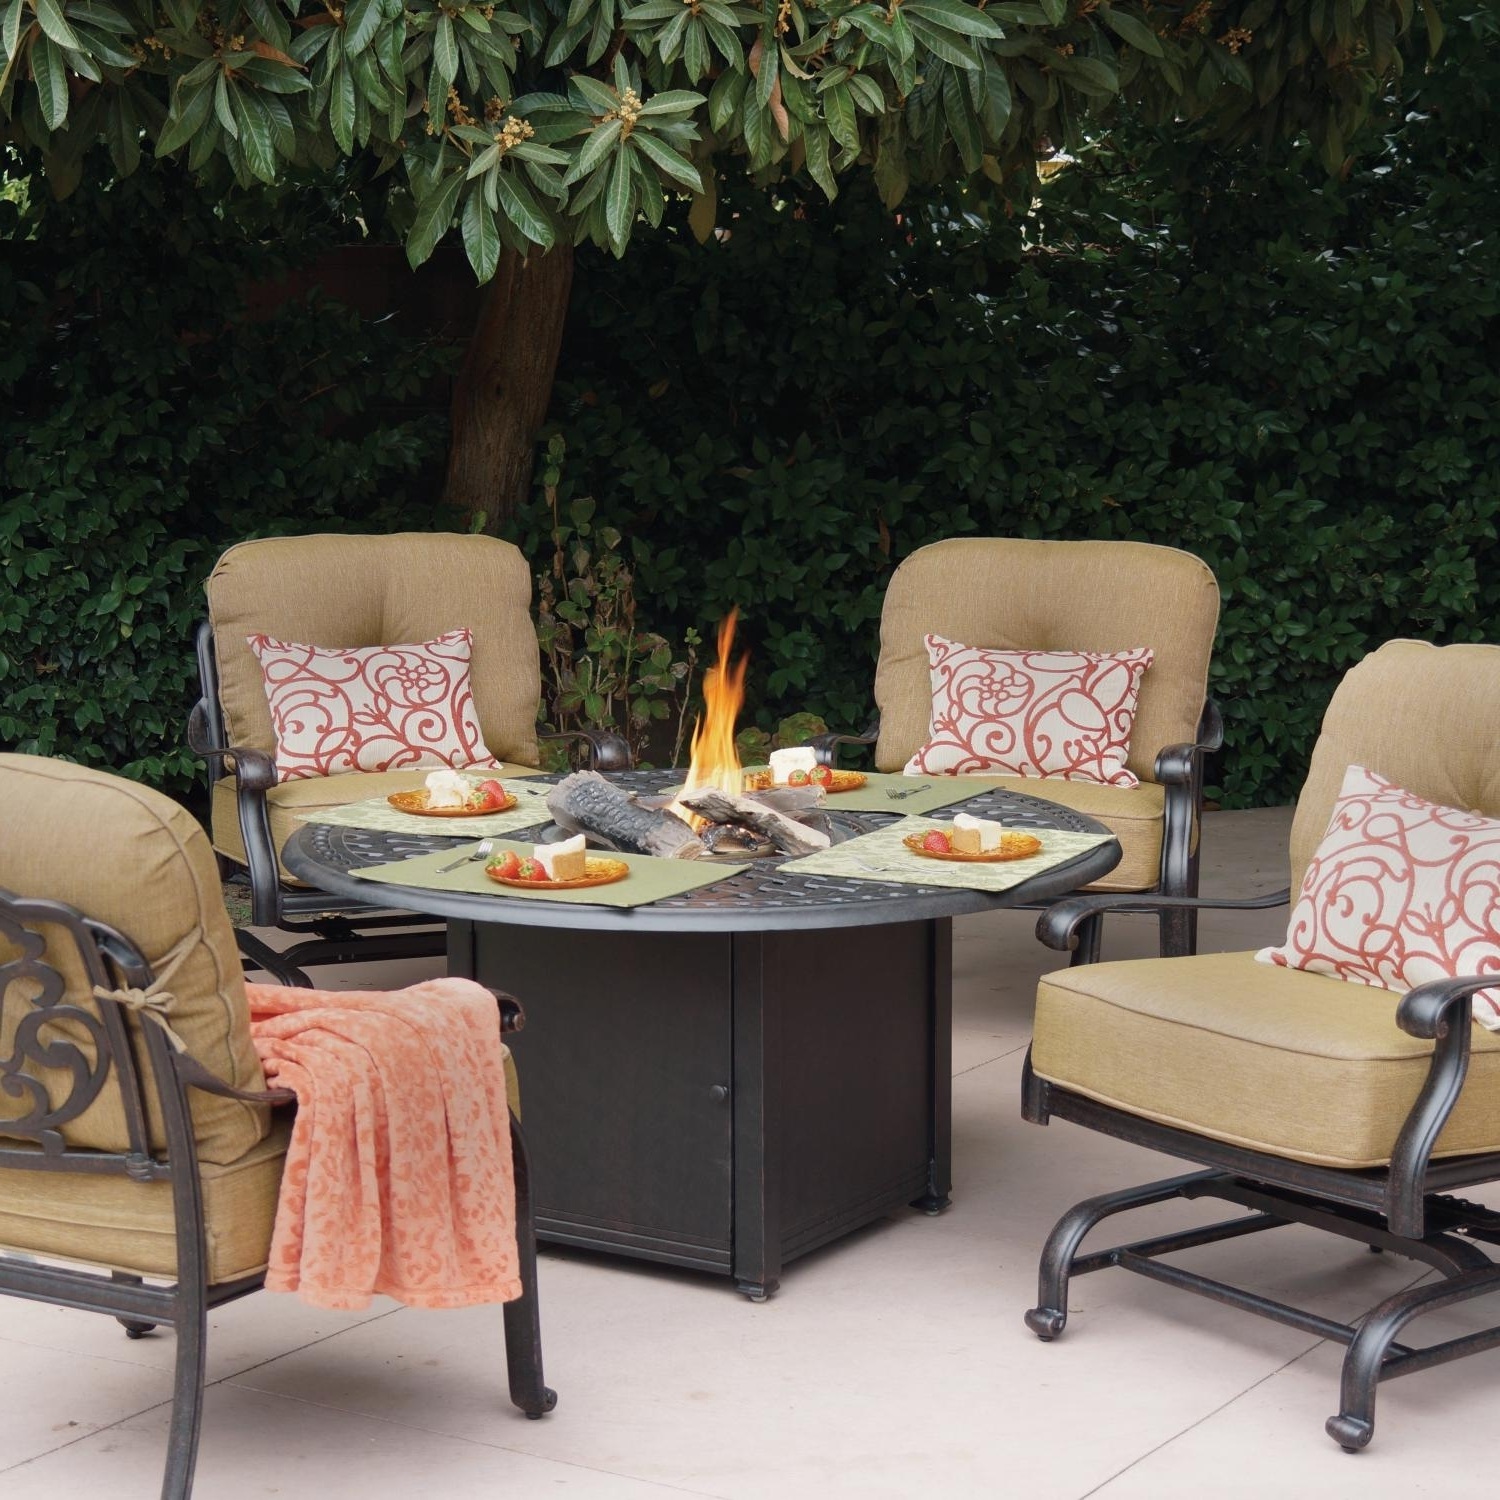 Patio Conversation Sets With Fire Table Throughout Fashionable Patio Ideas: Patio Sets Fire Pit Table With Ceramic Table Material (View 20 of 20)